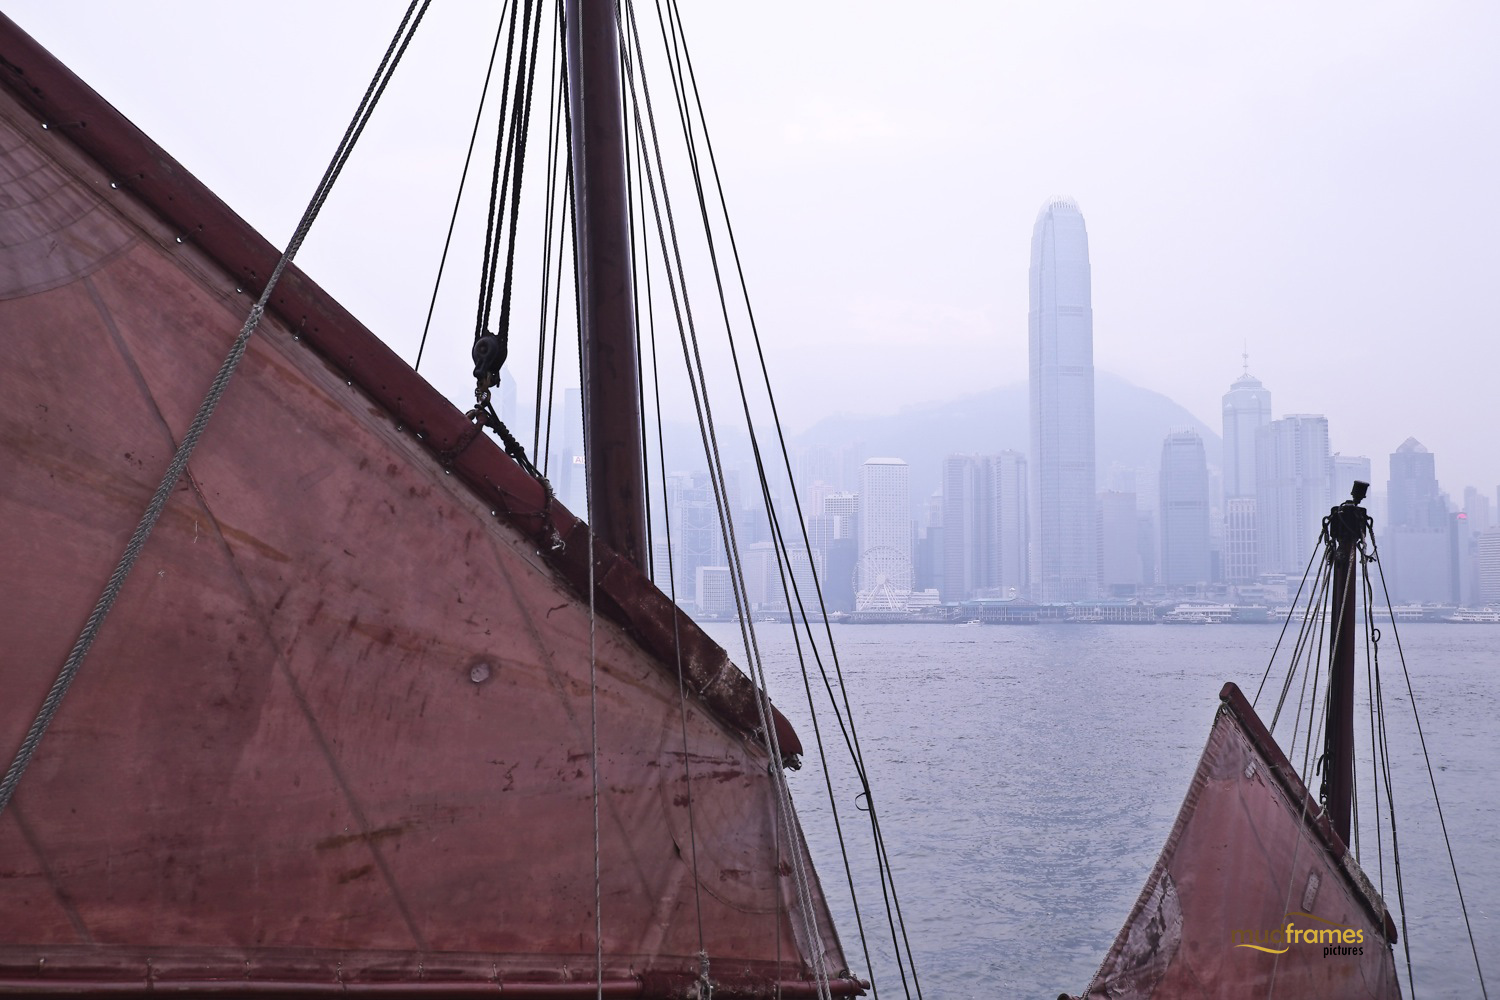 Junk sails with Hong Kong island as backdrop